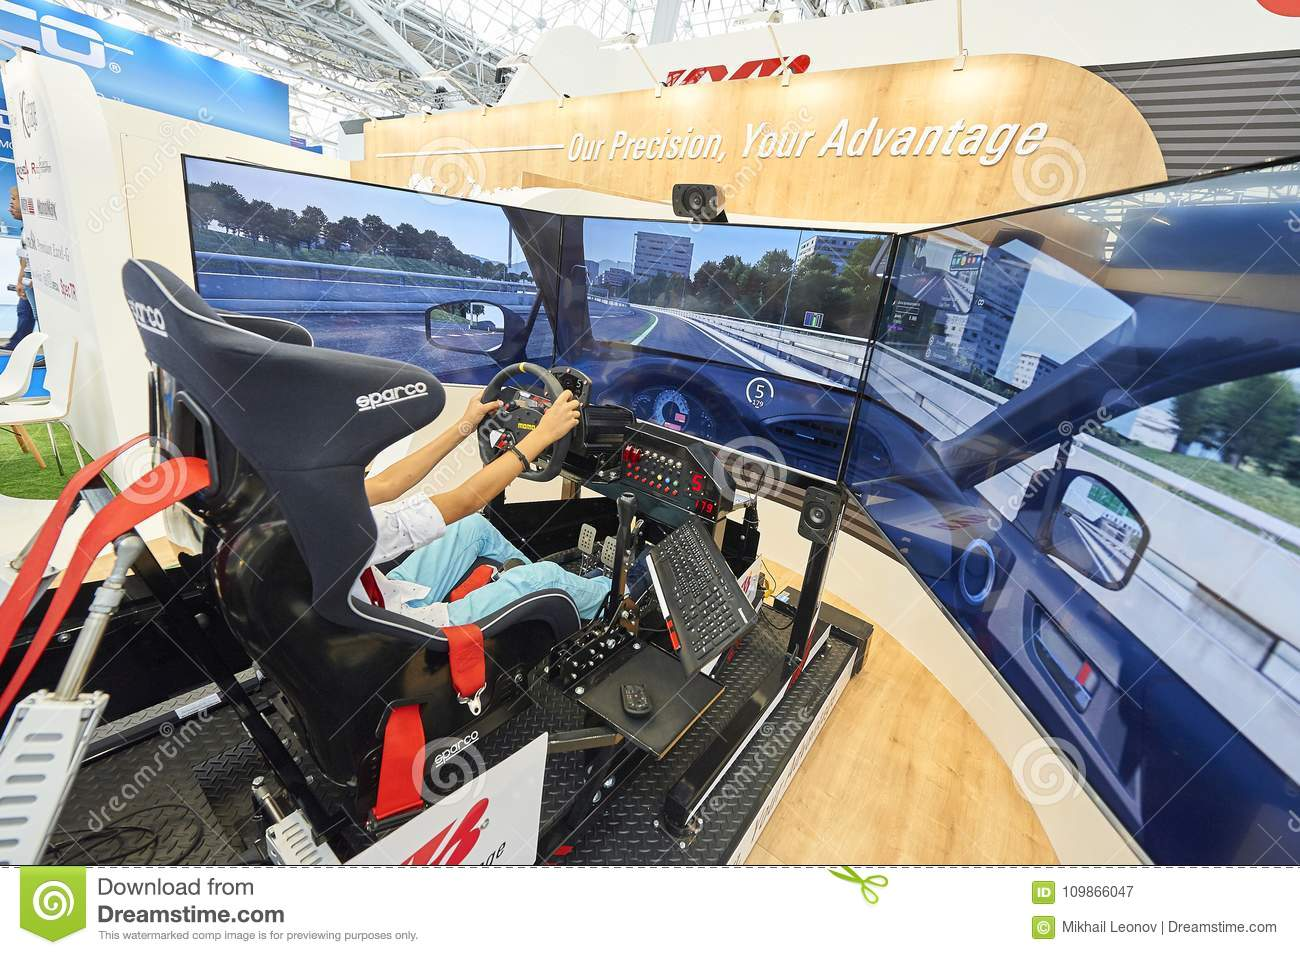 D Exhibition Stand Free Download : Moscow aug. 22 2017: view on exhibition stand with 3d car driving